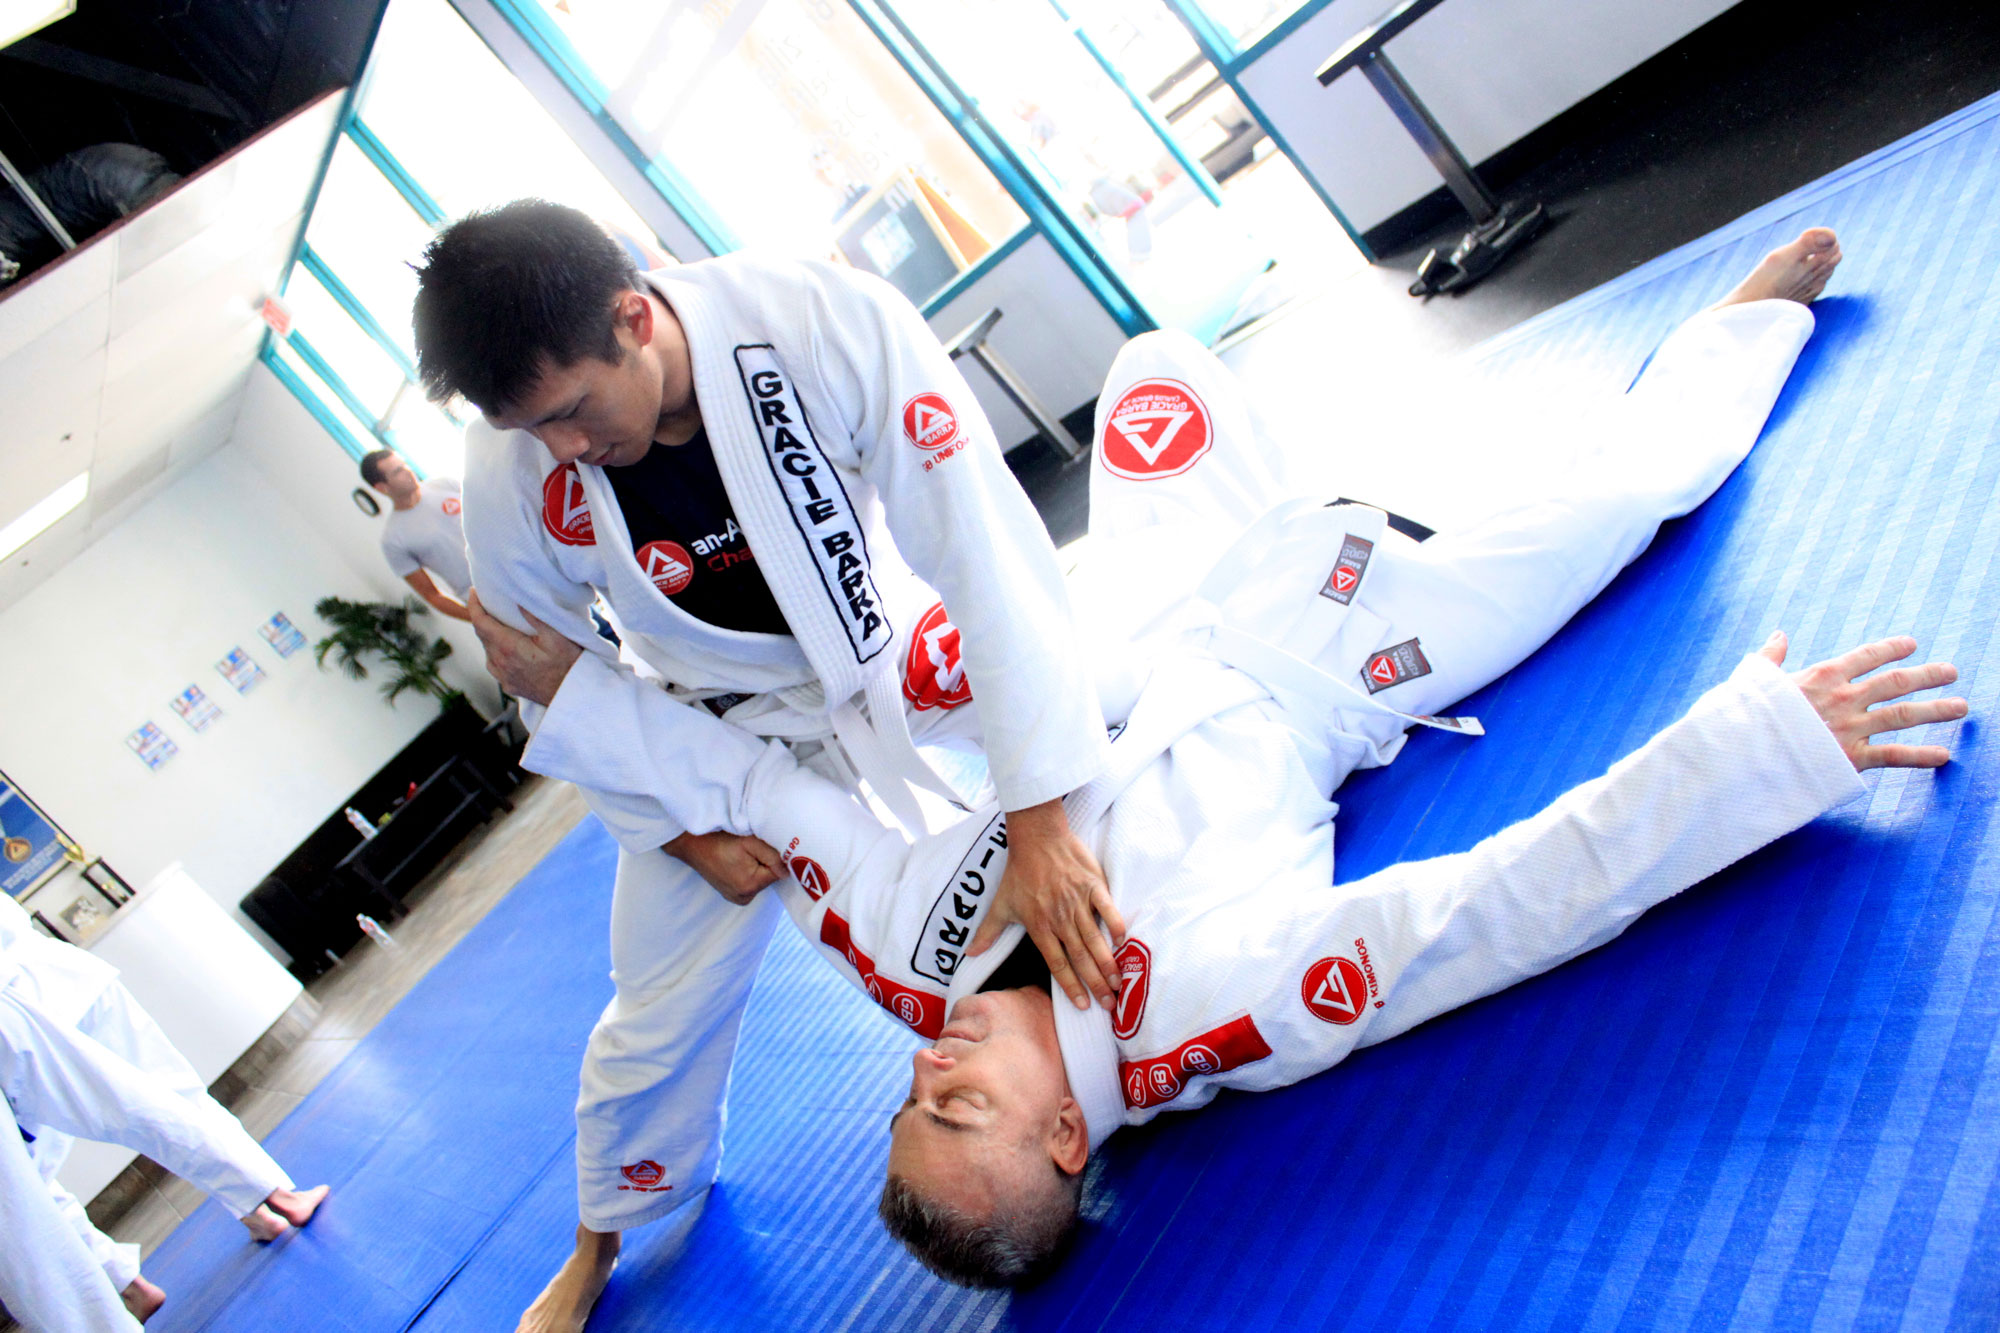 Jiu-jitsu self defense classes in burnaby